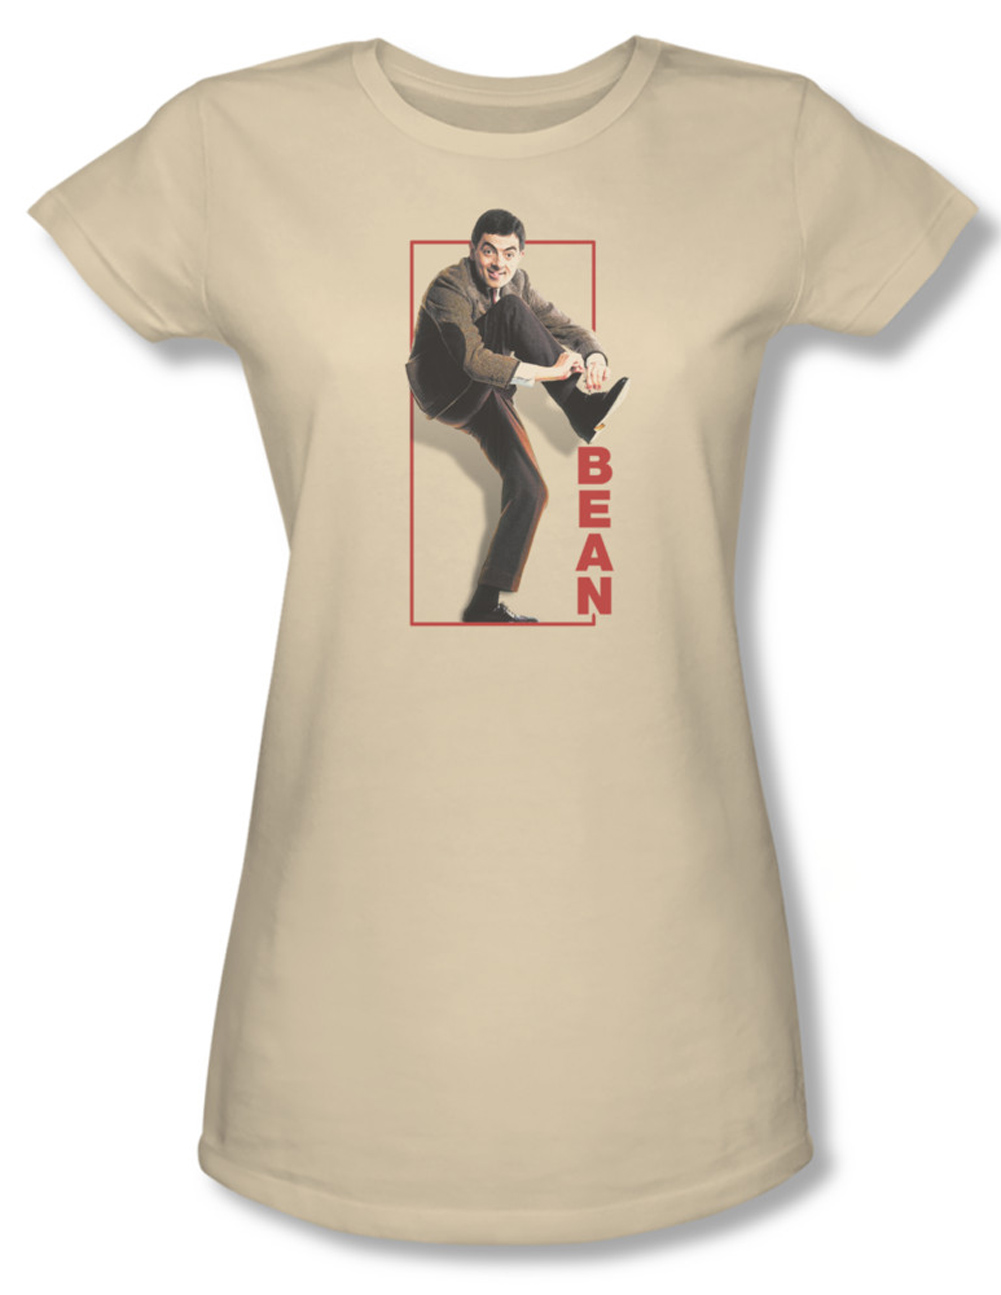 mr bean juniors shirt tying shoe cream tee t shirt mr bean tying shoe shirts. Black Bedroom Furniture Sets. Home Design Ideas